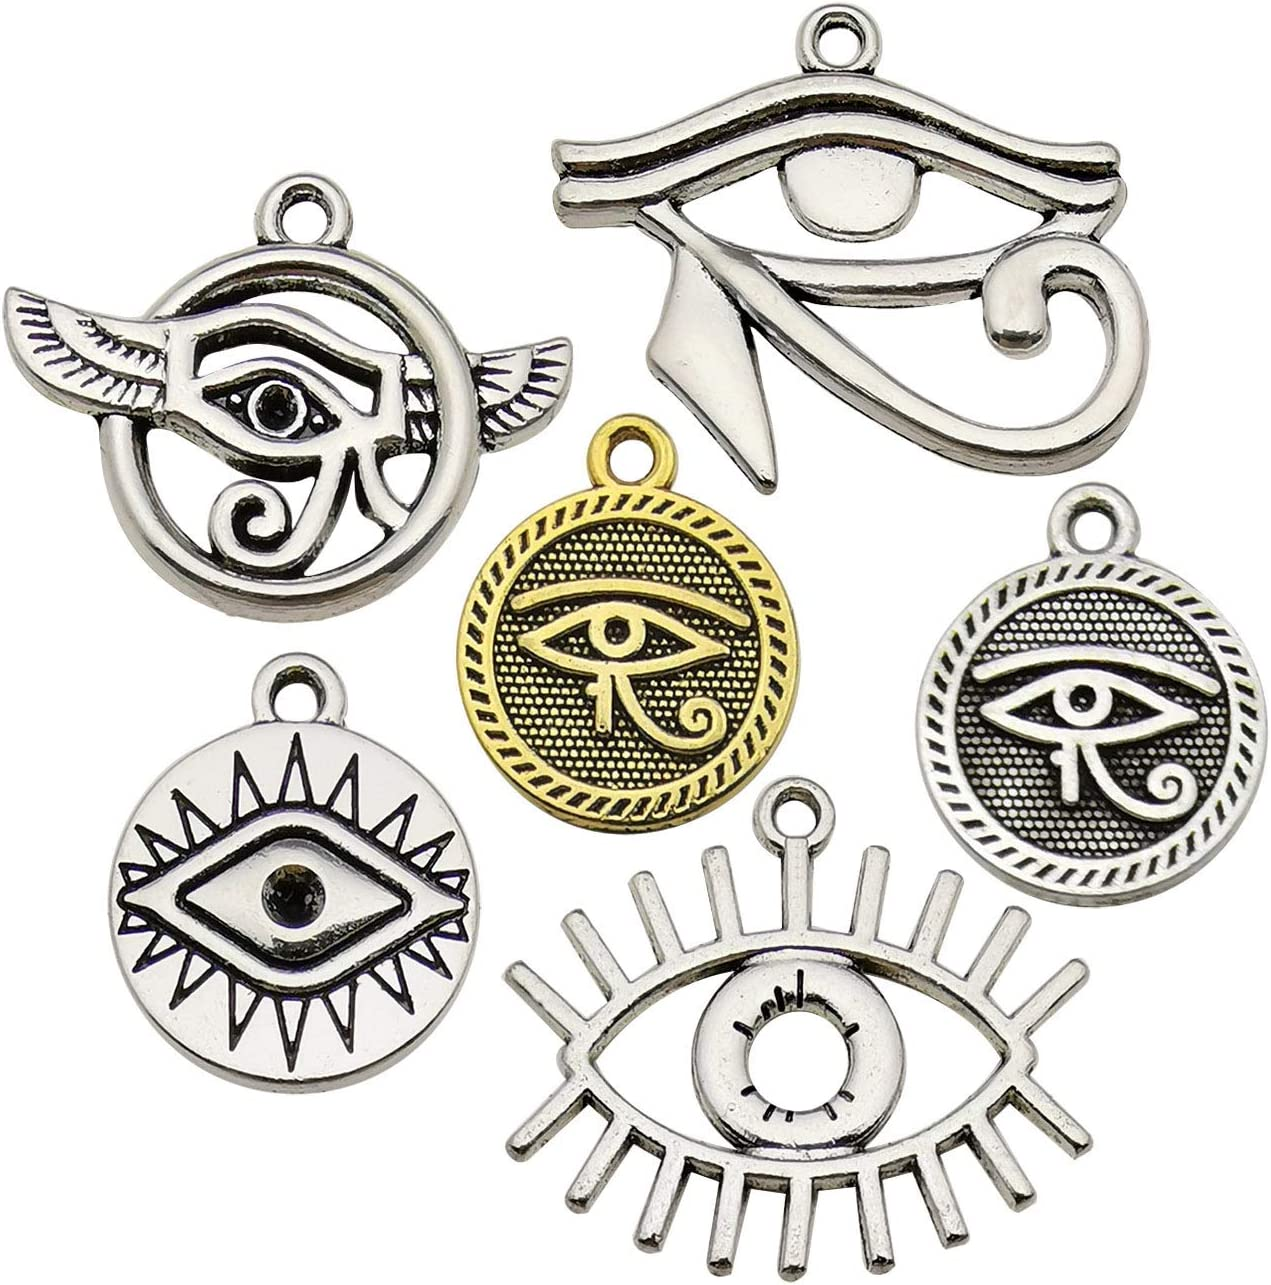 WOCRAFT 100g Sale SALE% OFF Popular brand in the world 42pcs Wholesale Bulk Lots Eye for Horus of Charms